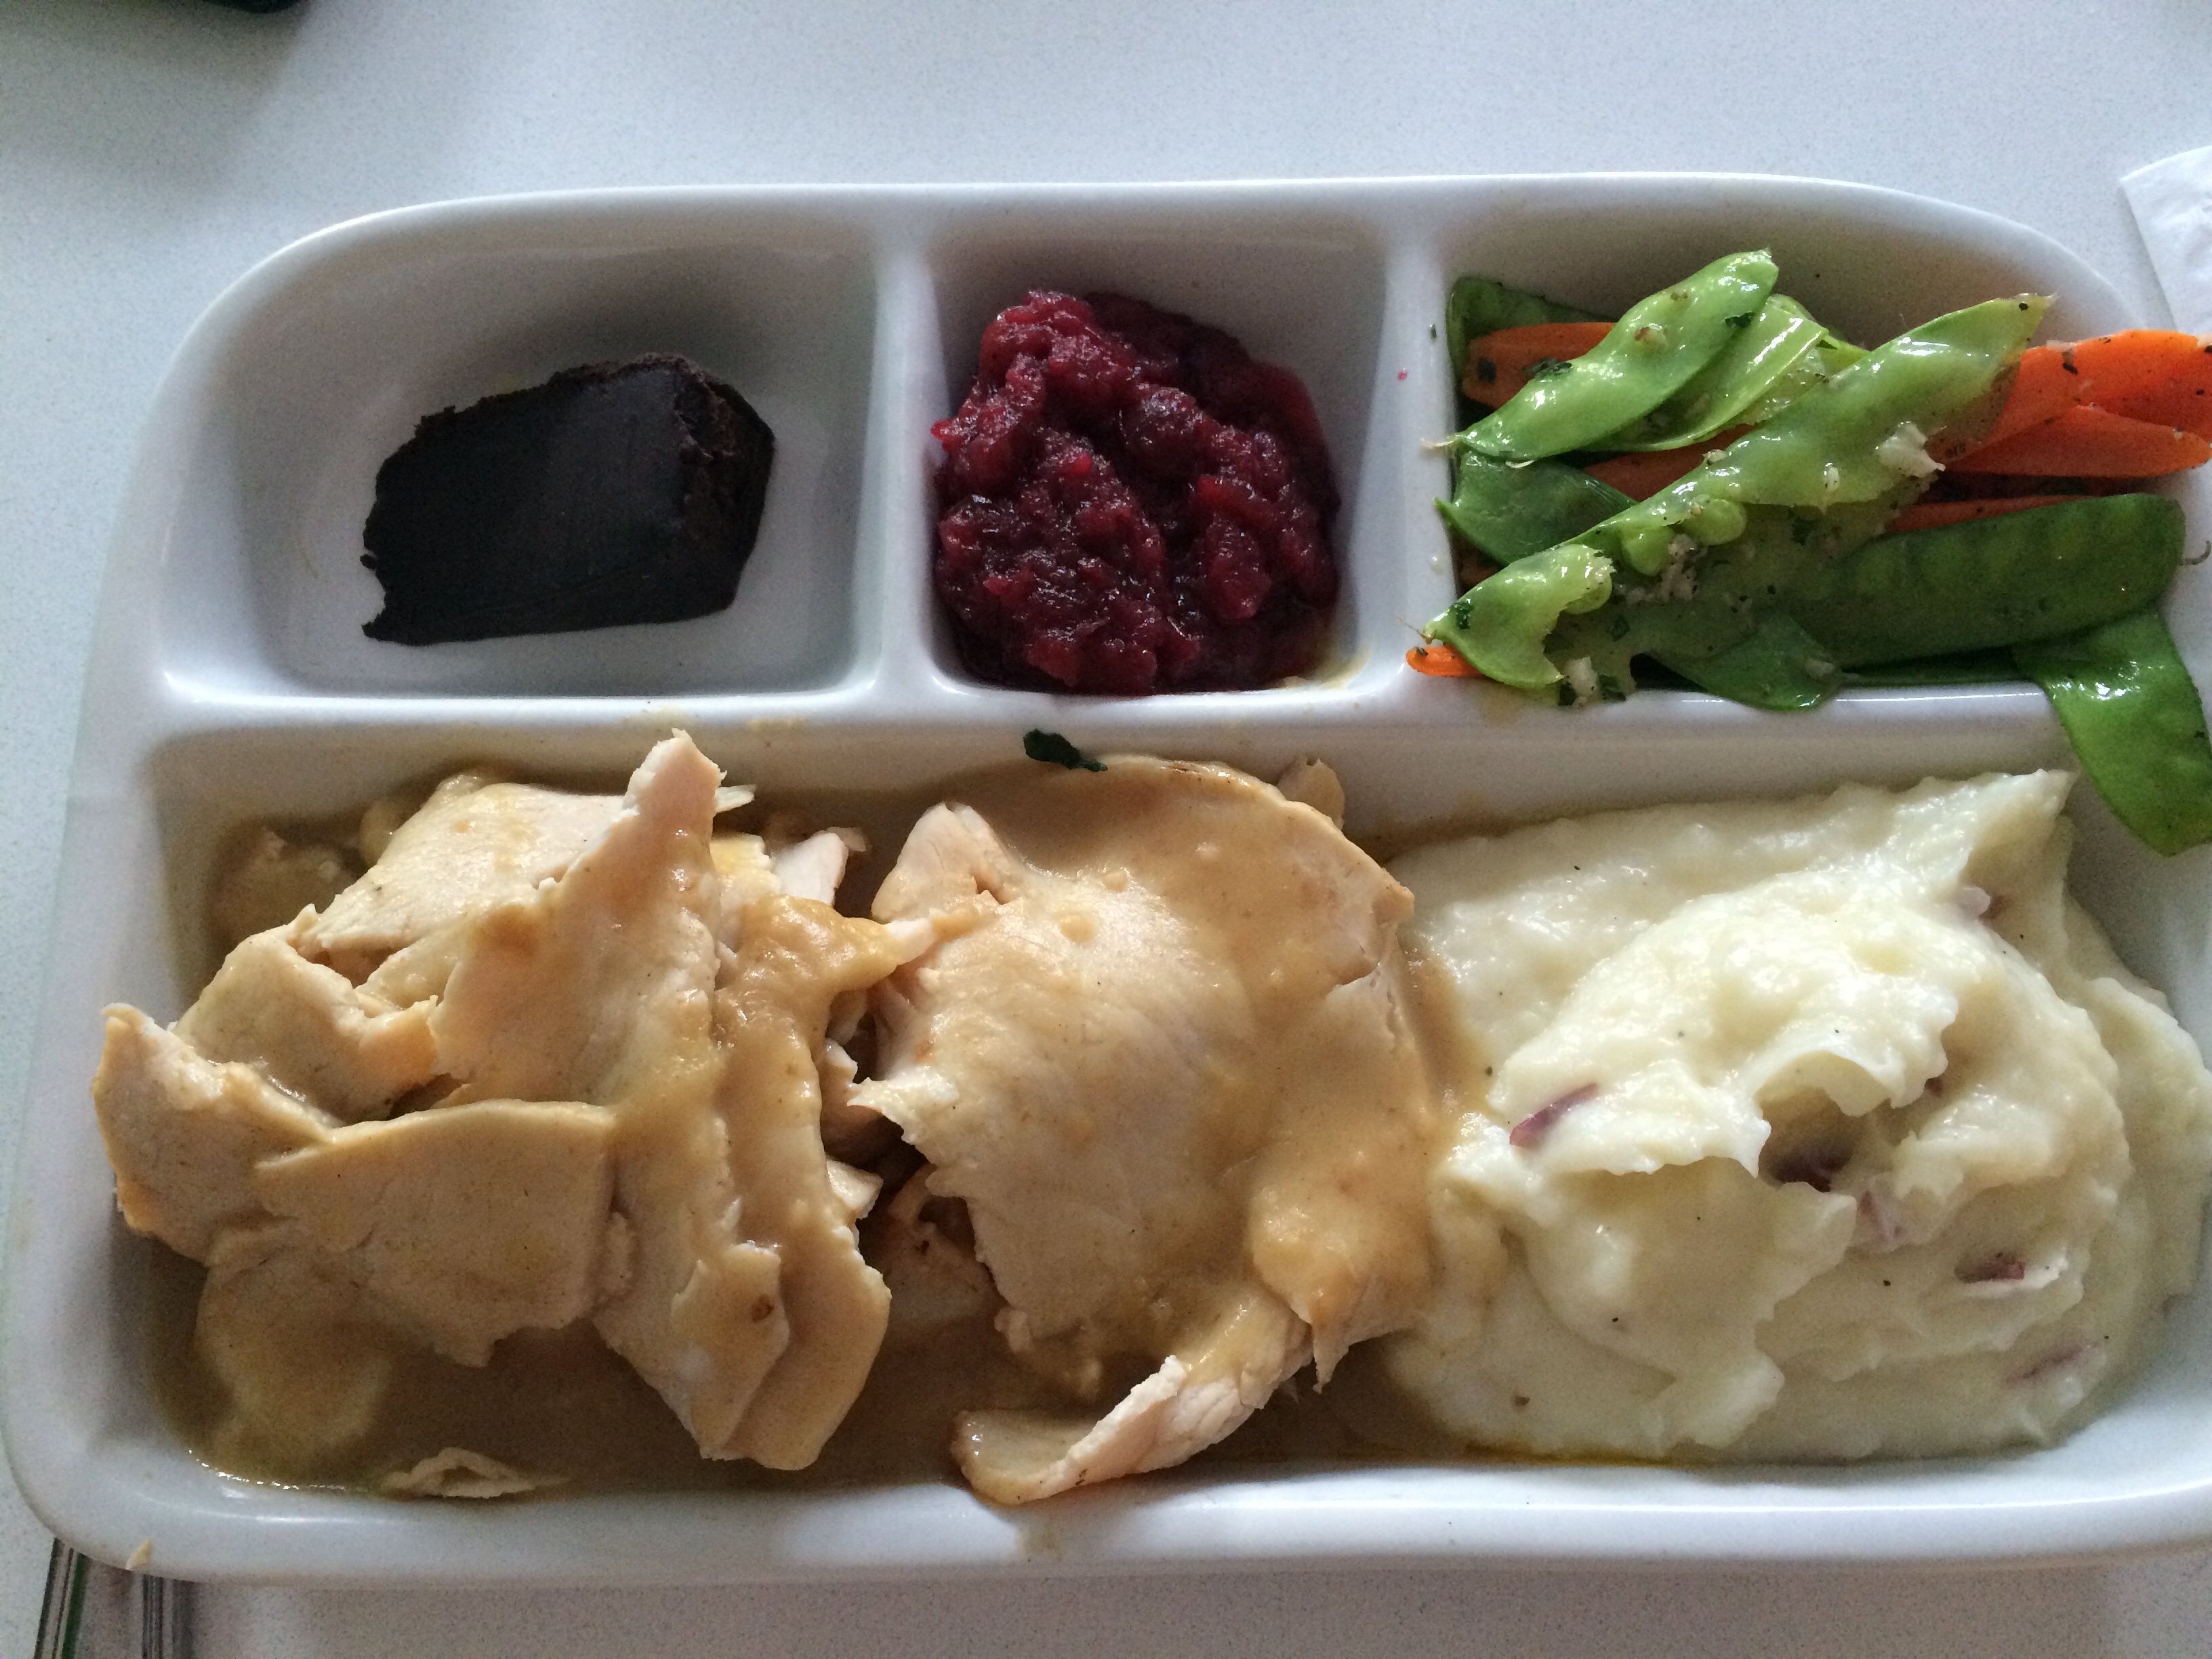 Turkey tv dinner.